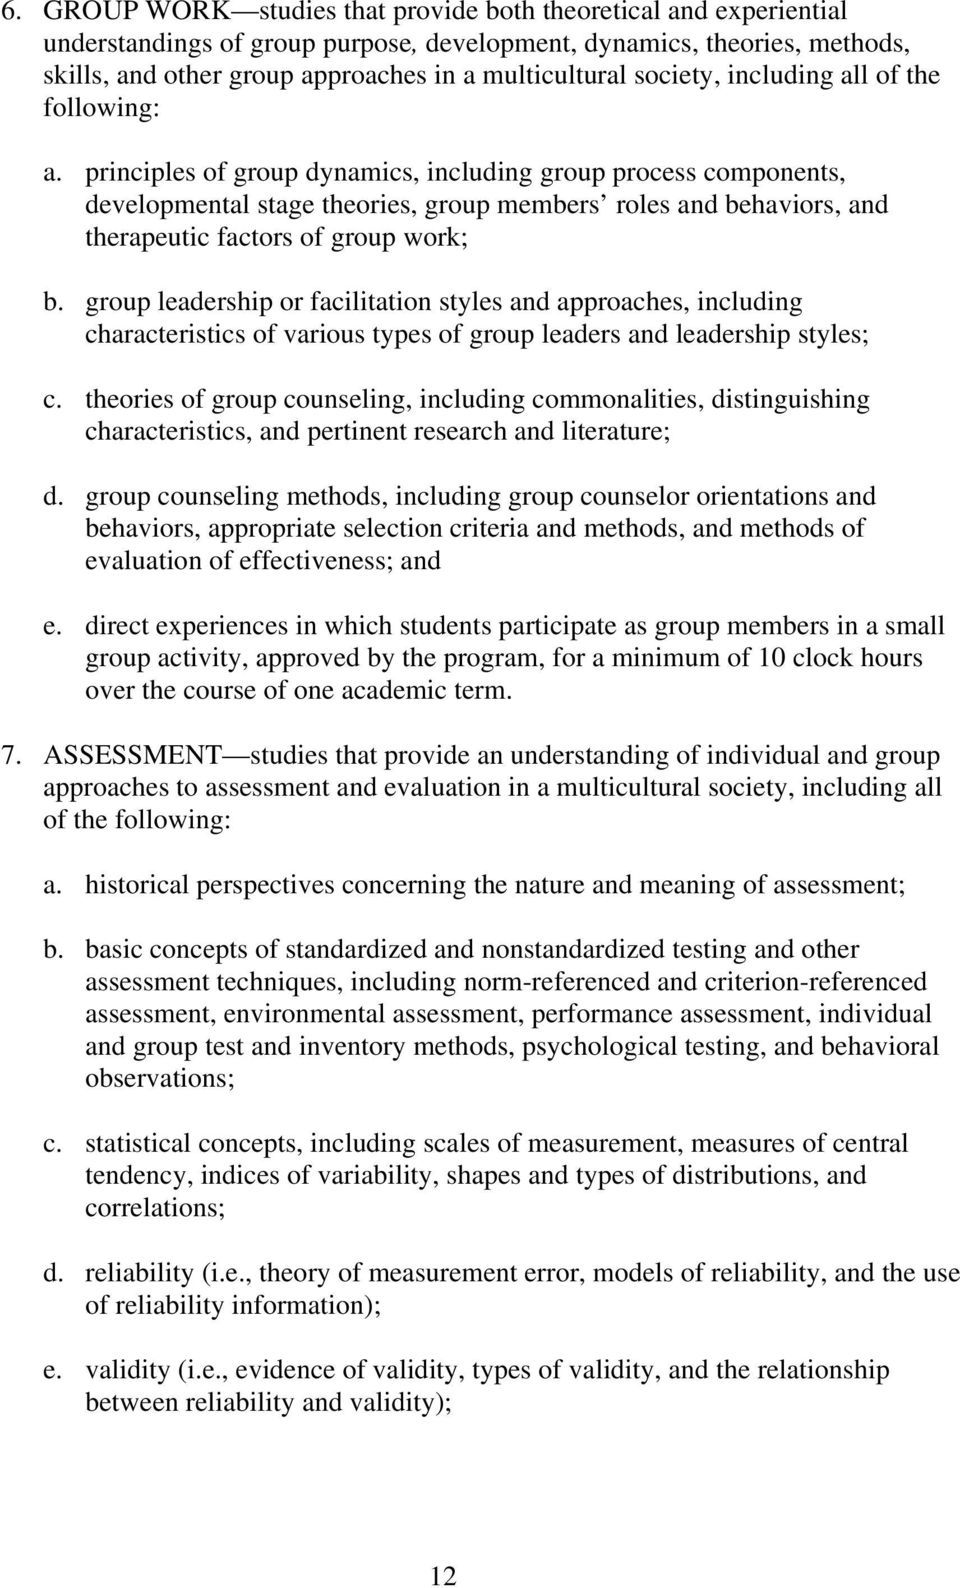 principles of group dynamics, including group process components, developmental stage theories, group members roles and behaviors, and therapeutic factors of group work; b.